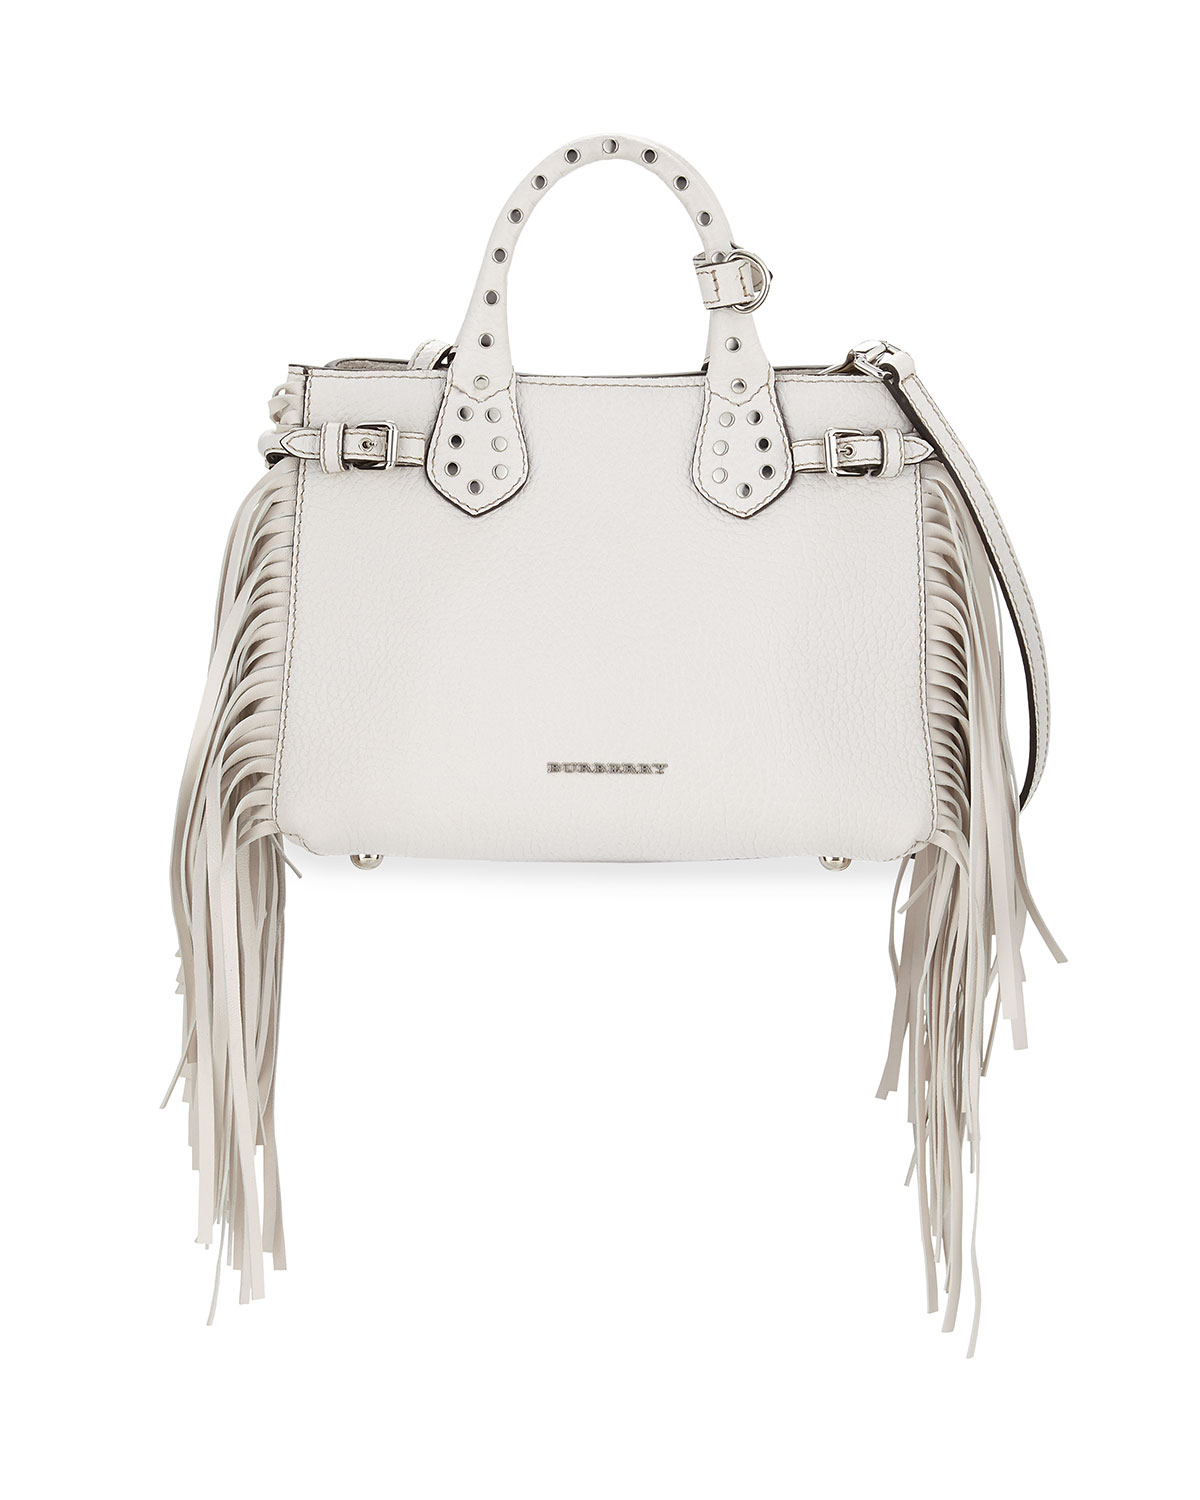 Burberry Baby Banner Studded Tote Bag w Fringe cde9c02f5f2cf